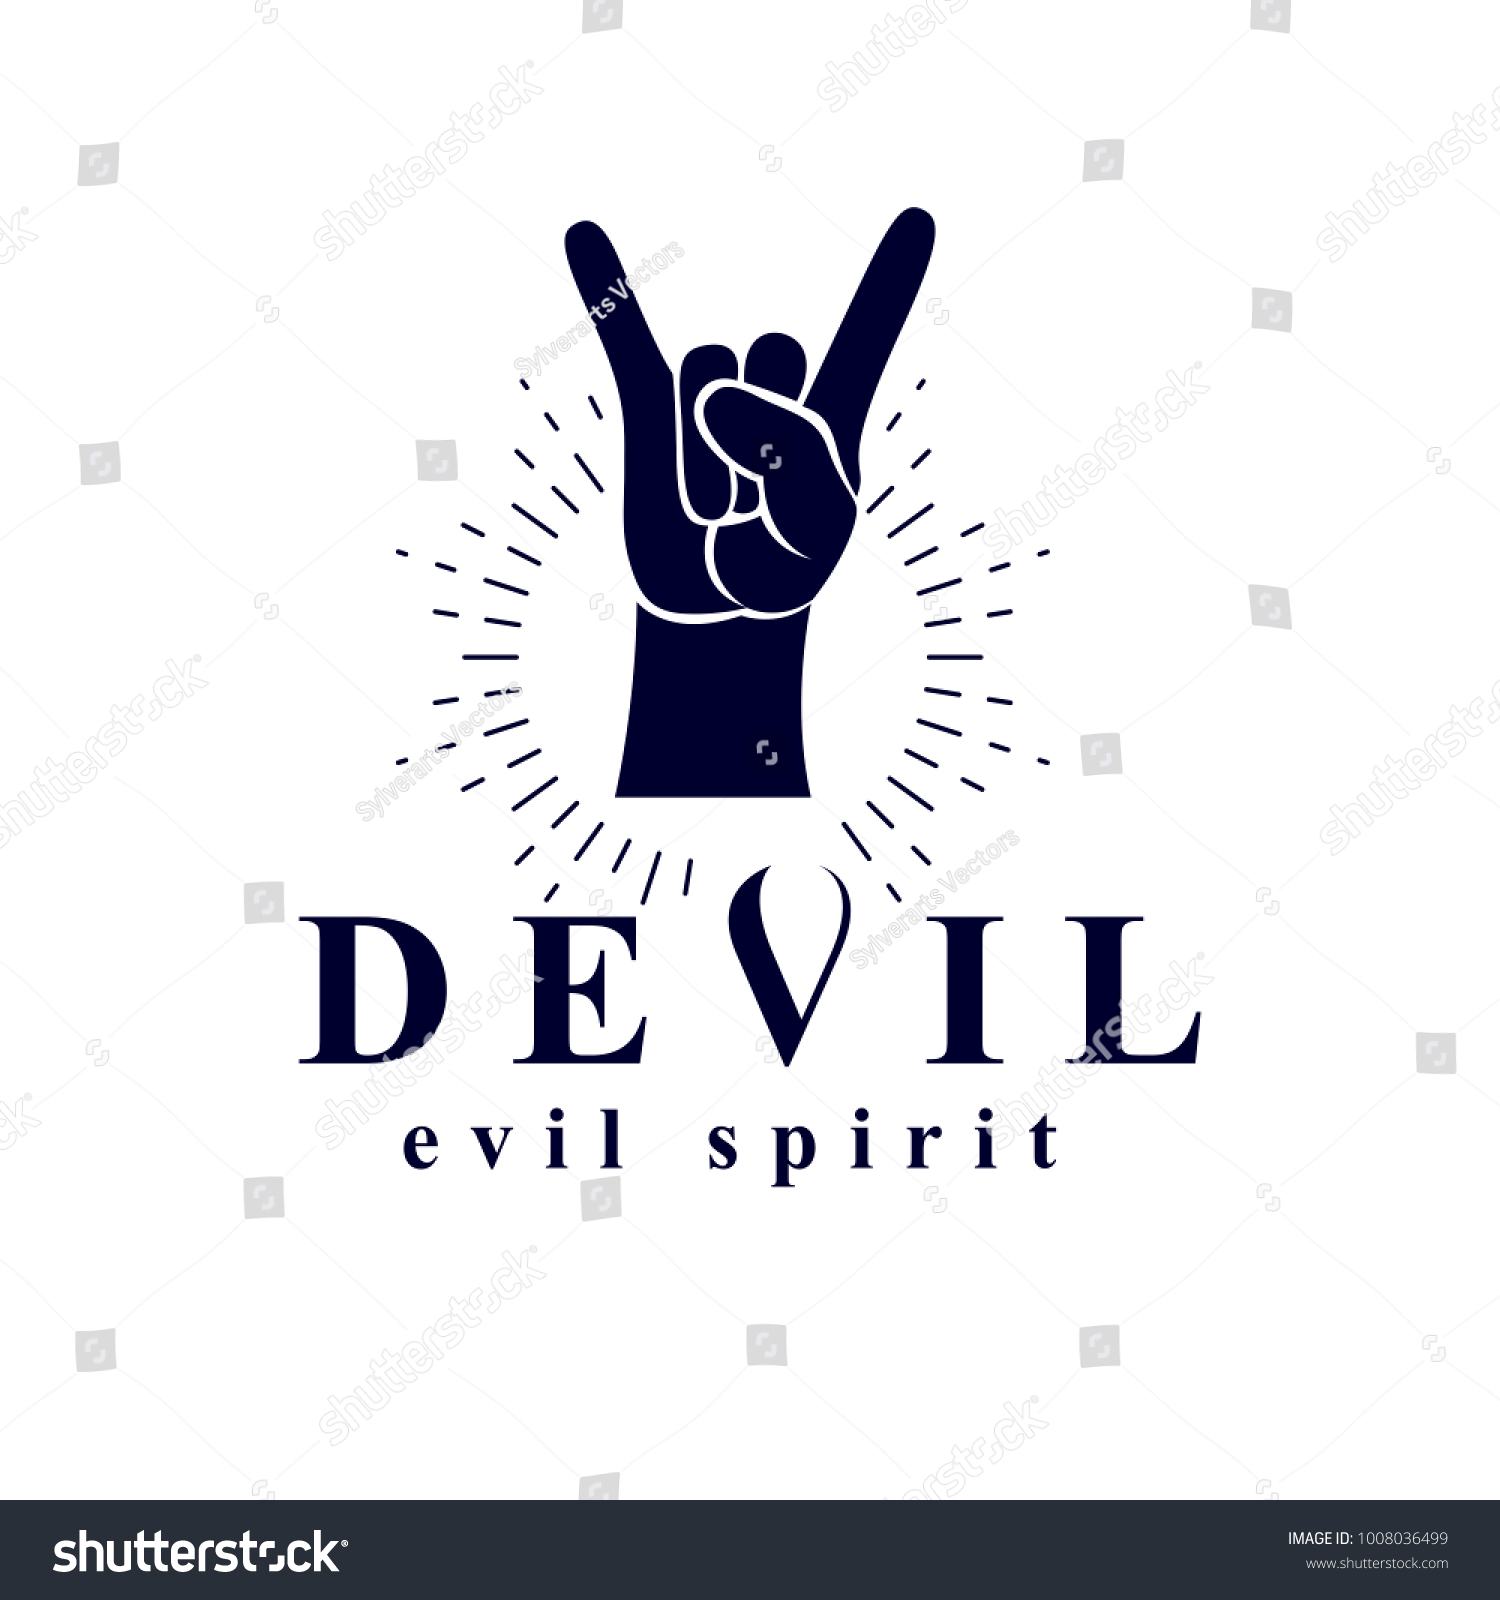 Rock on hand sign created devil stock vector 1008036499 shutterstock rock on hand sign created with a devil inscription evil spirit logo buycottarizona